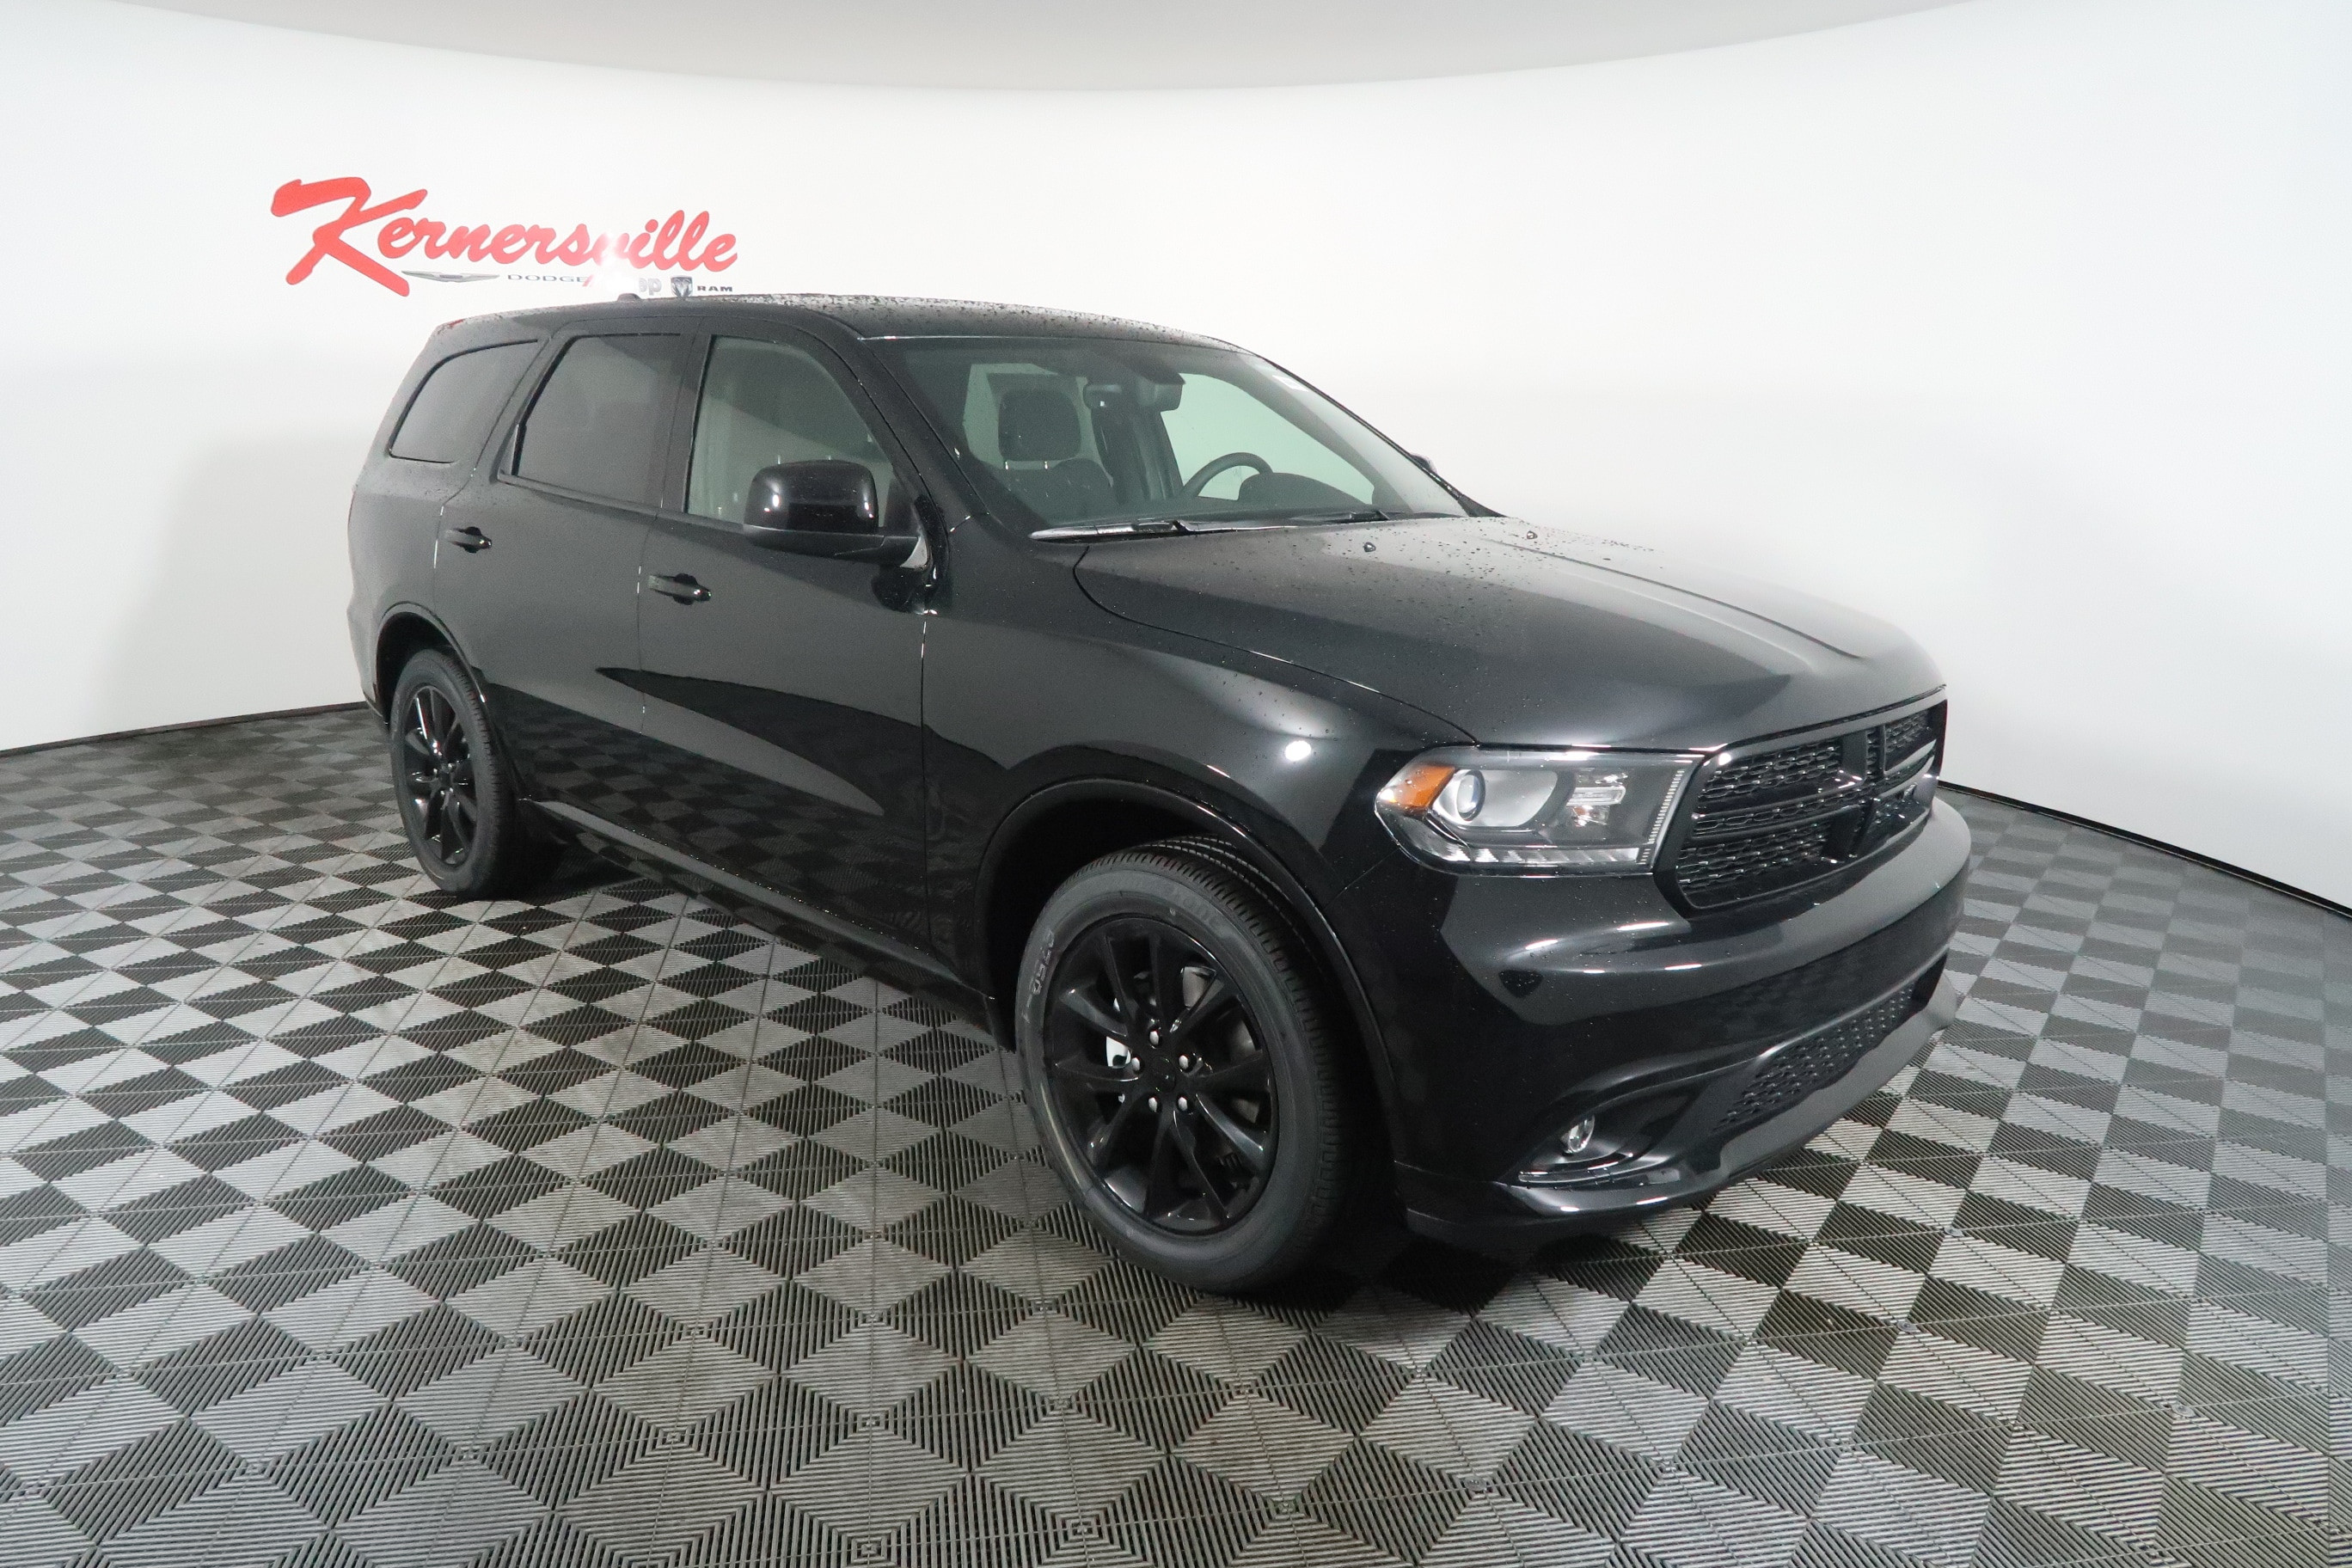 used cars for sale of kernersville unique the auto weekly new 2018 dodge durango sxt blacktop